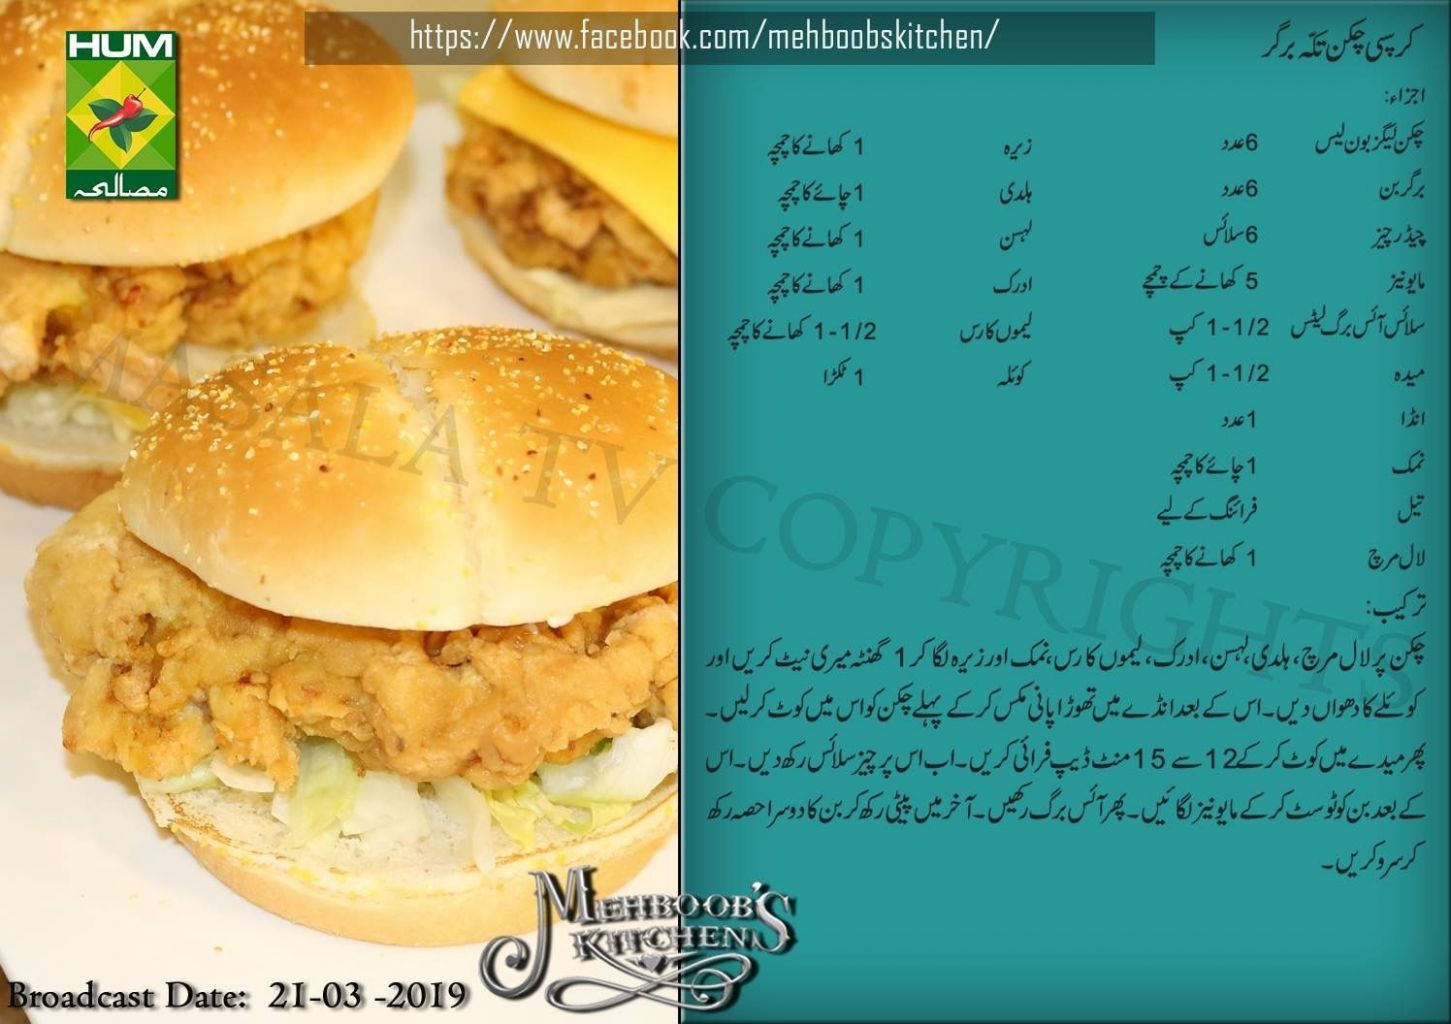 Pin by alizeekhan on receipes | Food recipes, Cooking recipes, Cooking - Urdu Recipes Fb